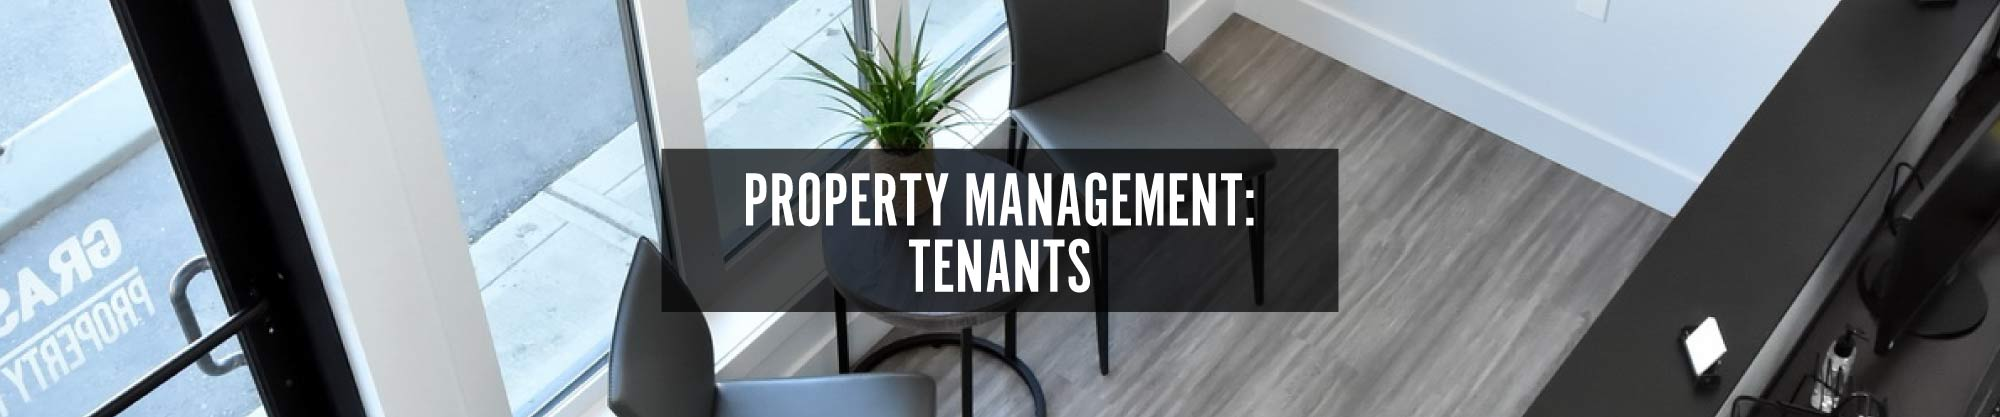 Grassroots Property Management - Find a Rental Home in Grande Prairie, AB